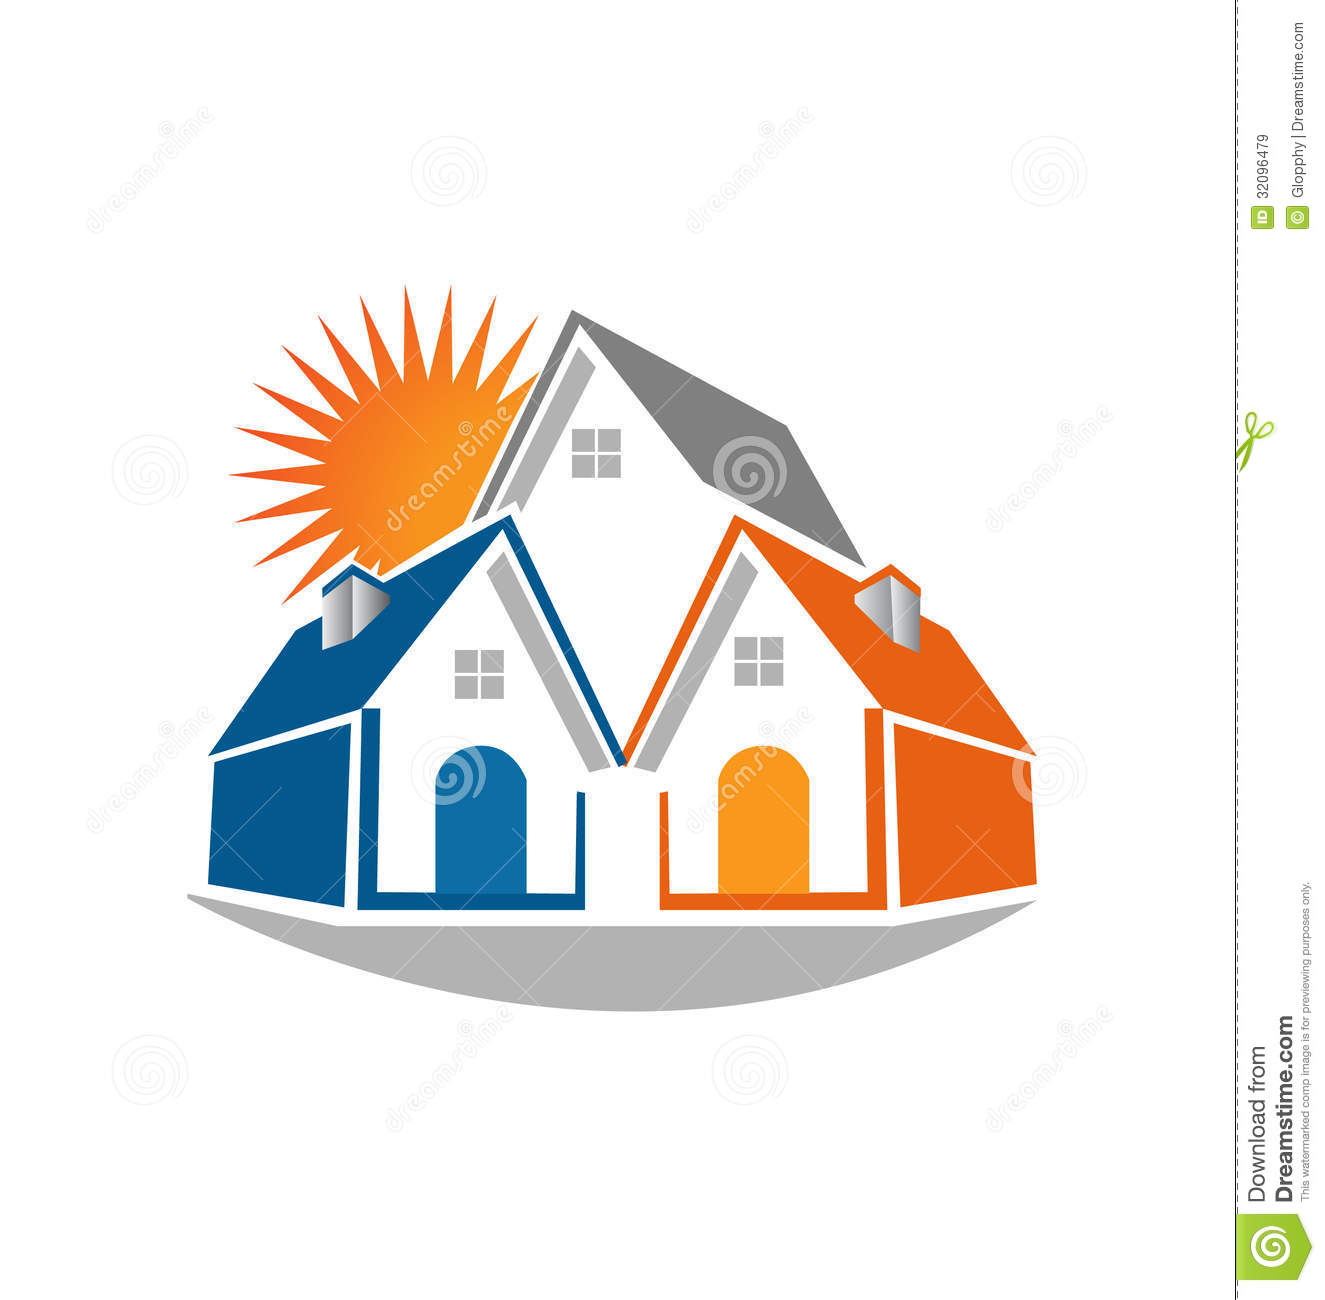 House with commercial logo clipart clipart suggest for Clipart estate